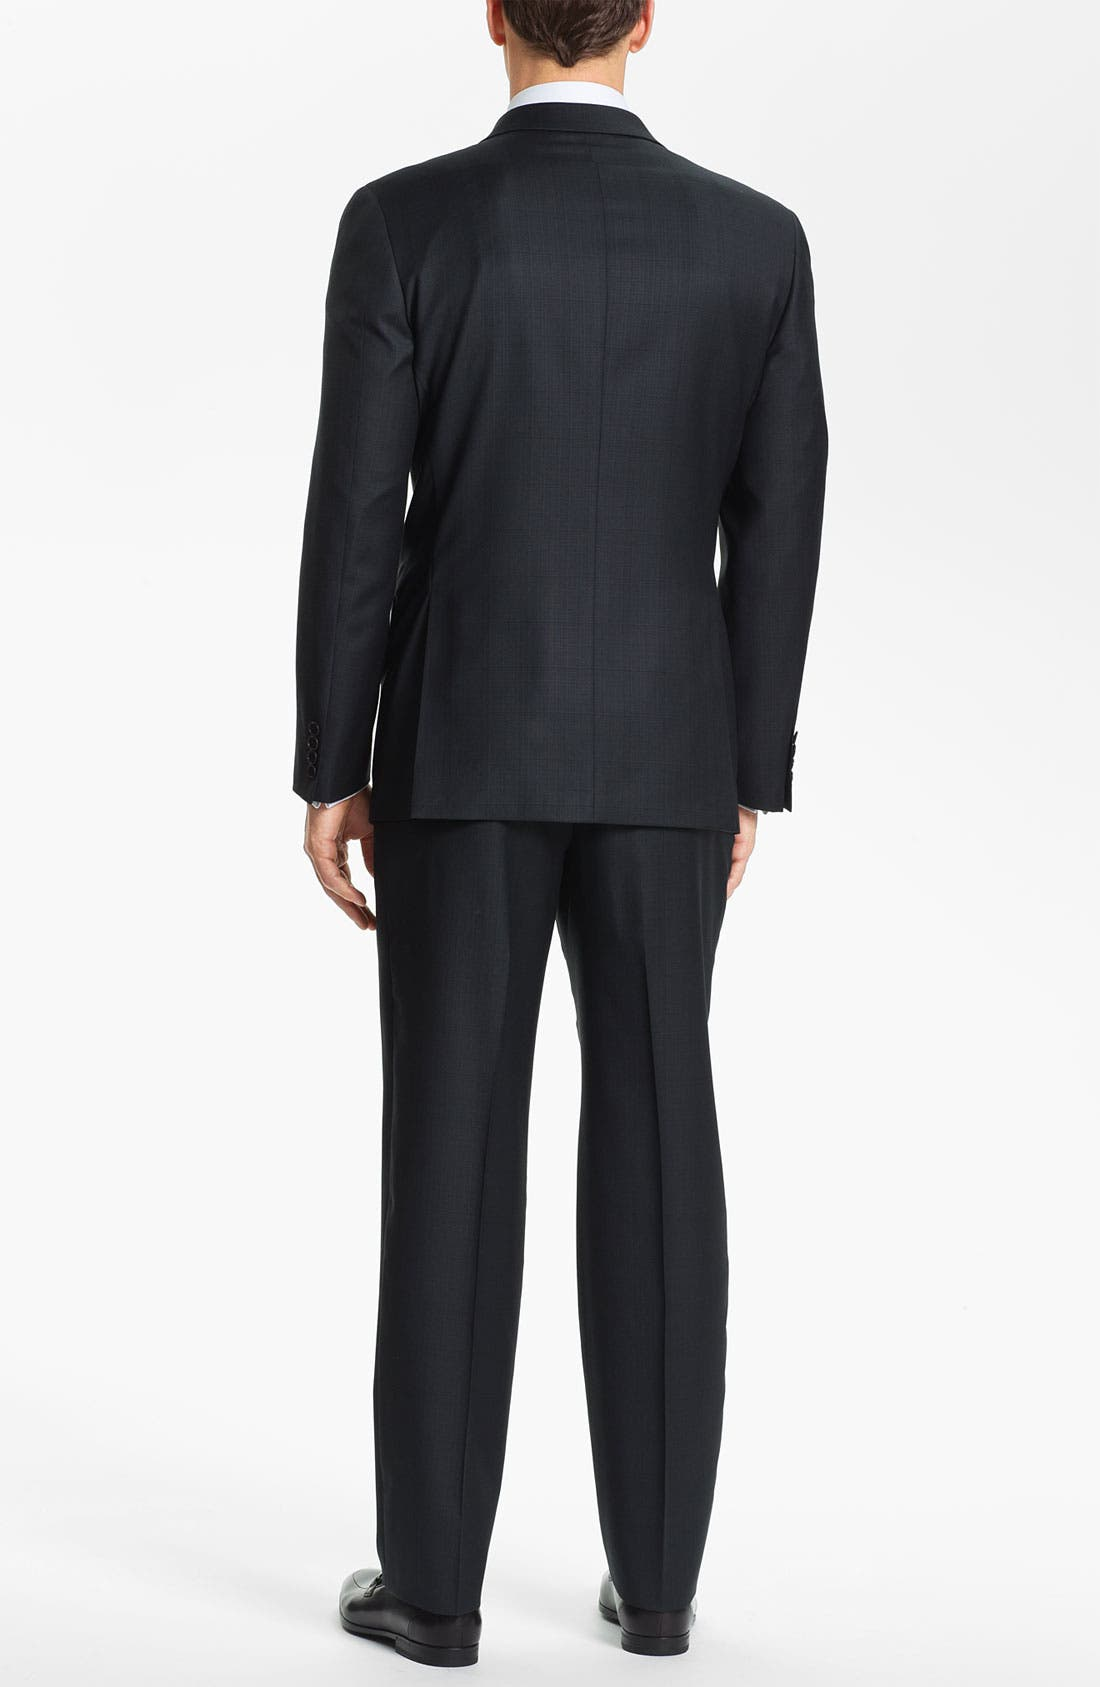 Alternate Image 3  - Joseph Abboud Trim Fit Three Piece Suit